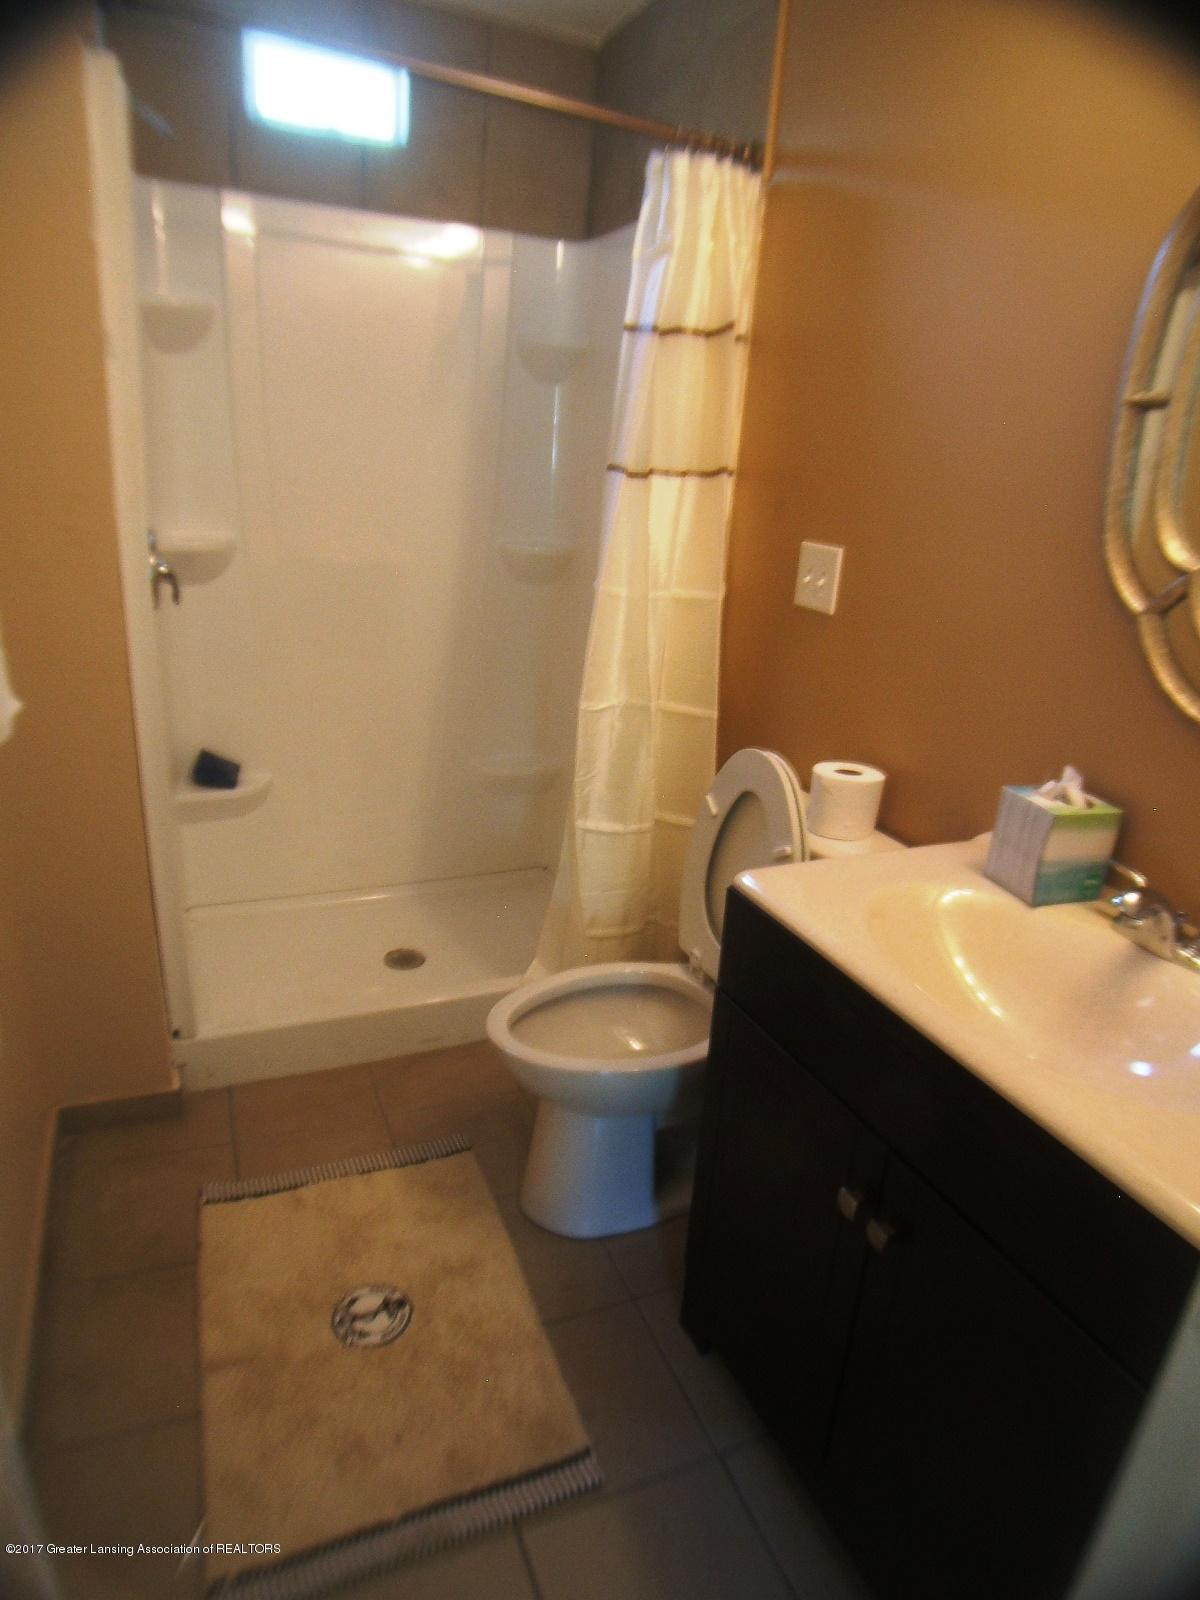 501 S Hayford Ave - Bathroom - 4